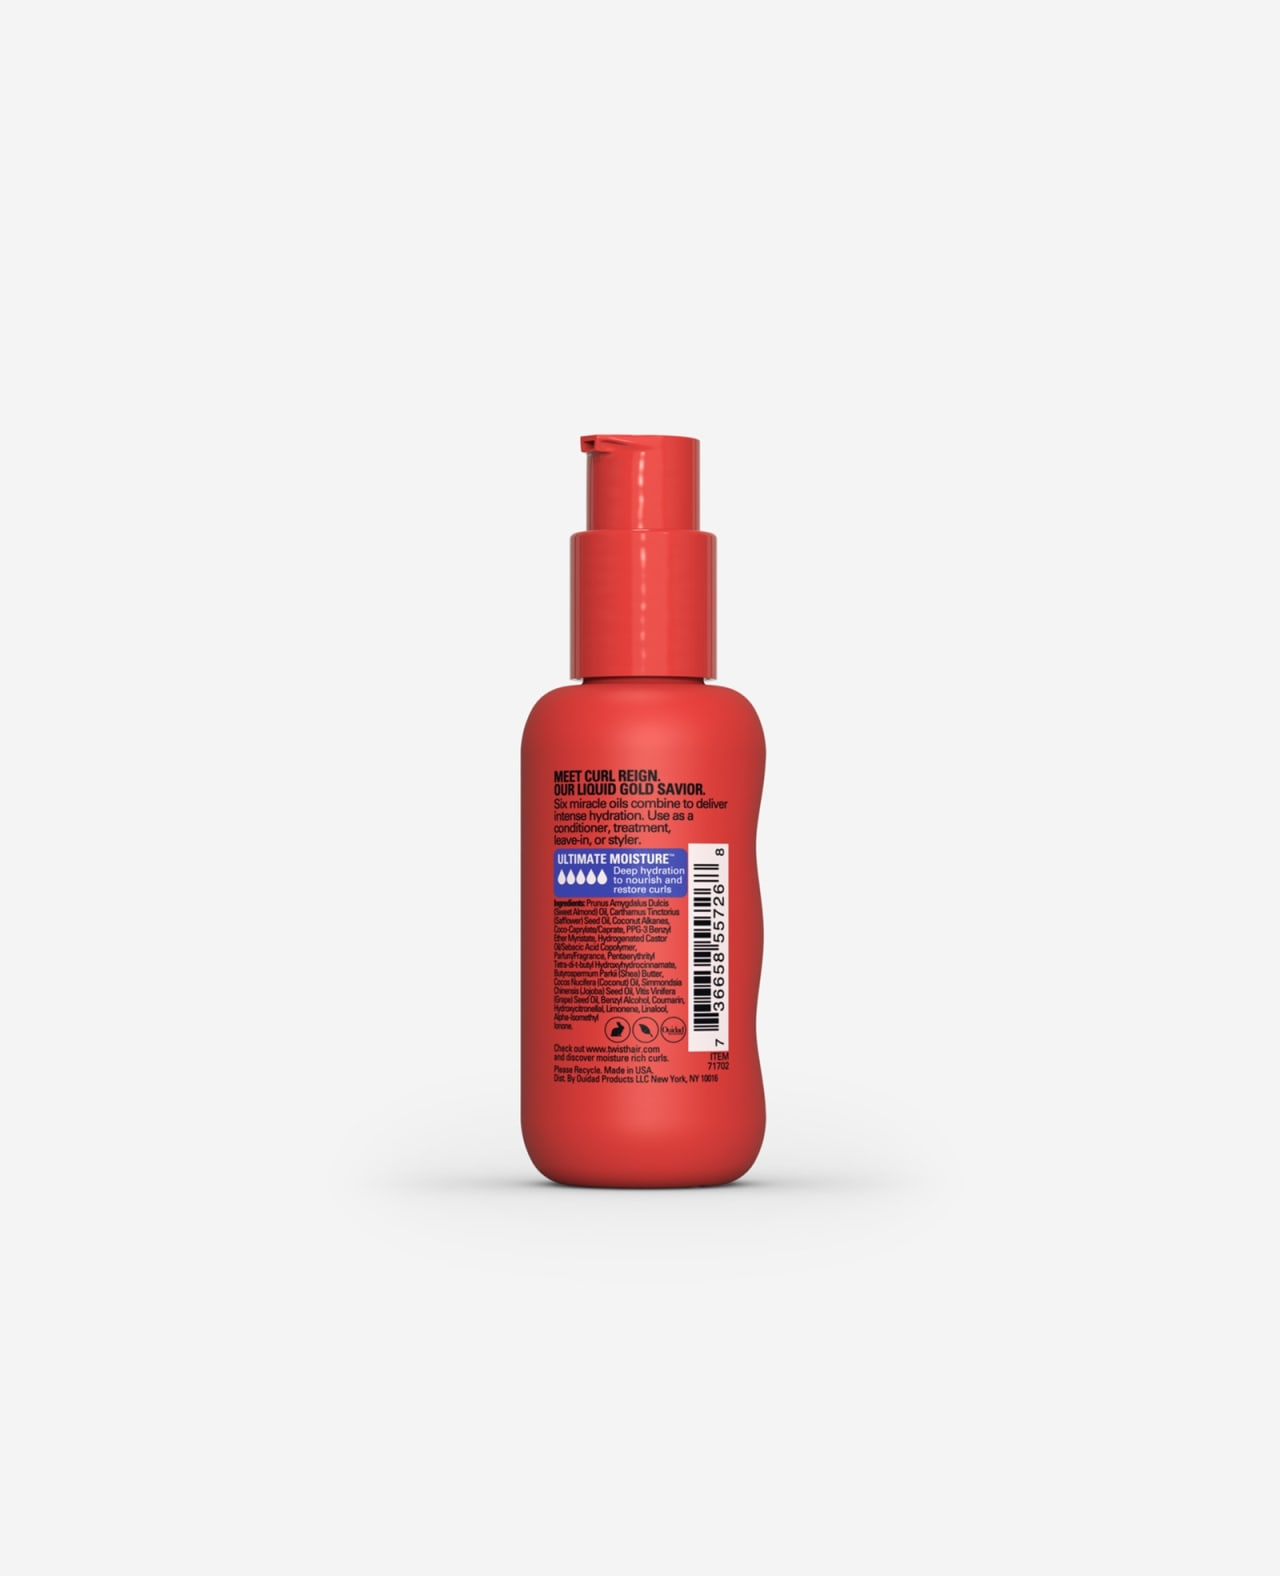 Twist Curl Reign Multi Use Miracle Oil Ultimate Moisture for Curls 2.5 fl.oz. back of pump bottle